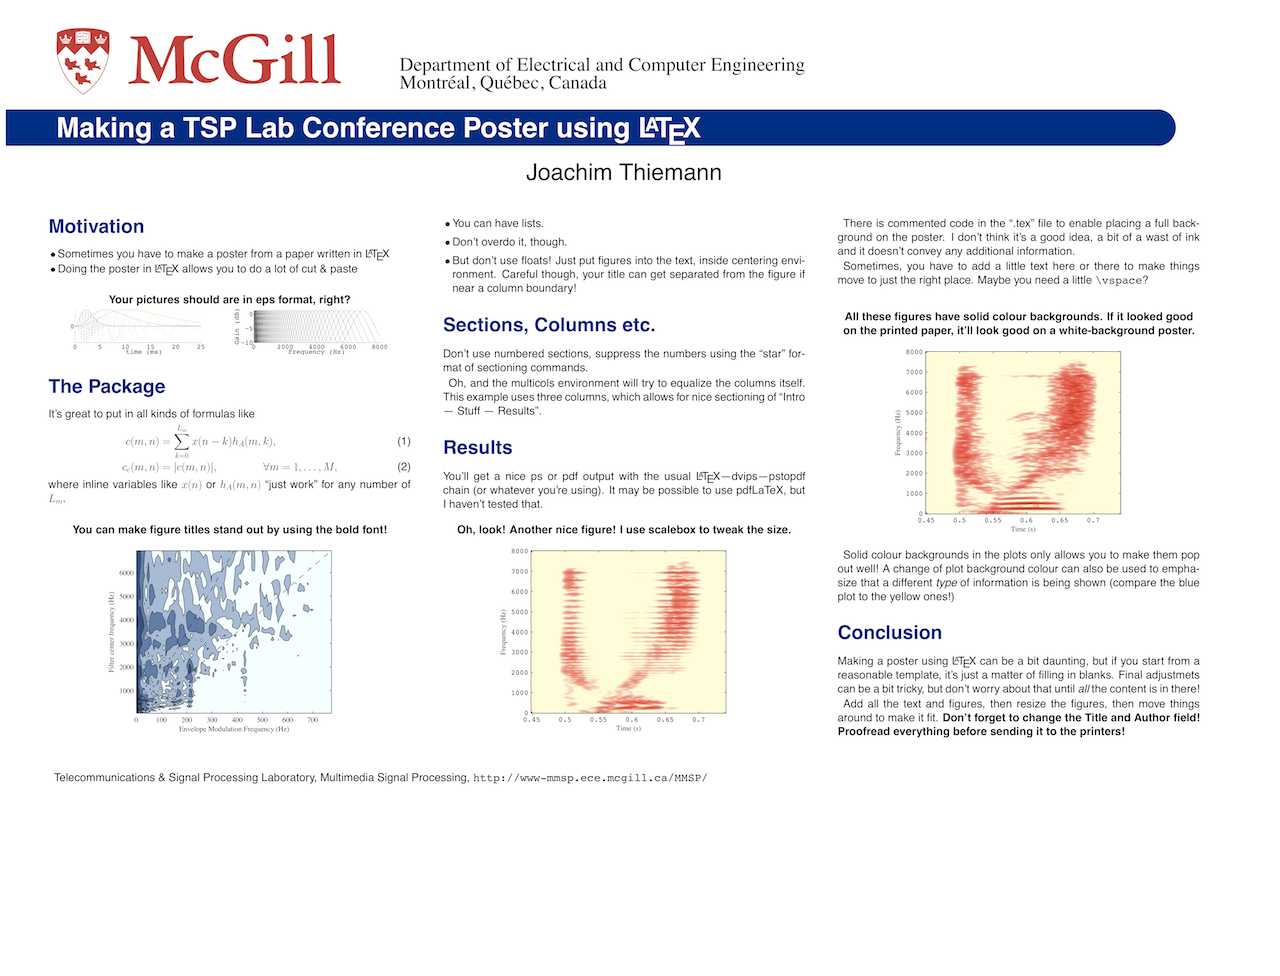 Signals Processed: Conference Posters using LaTeX